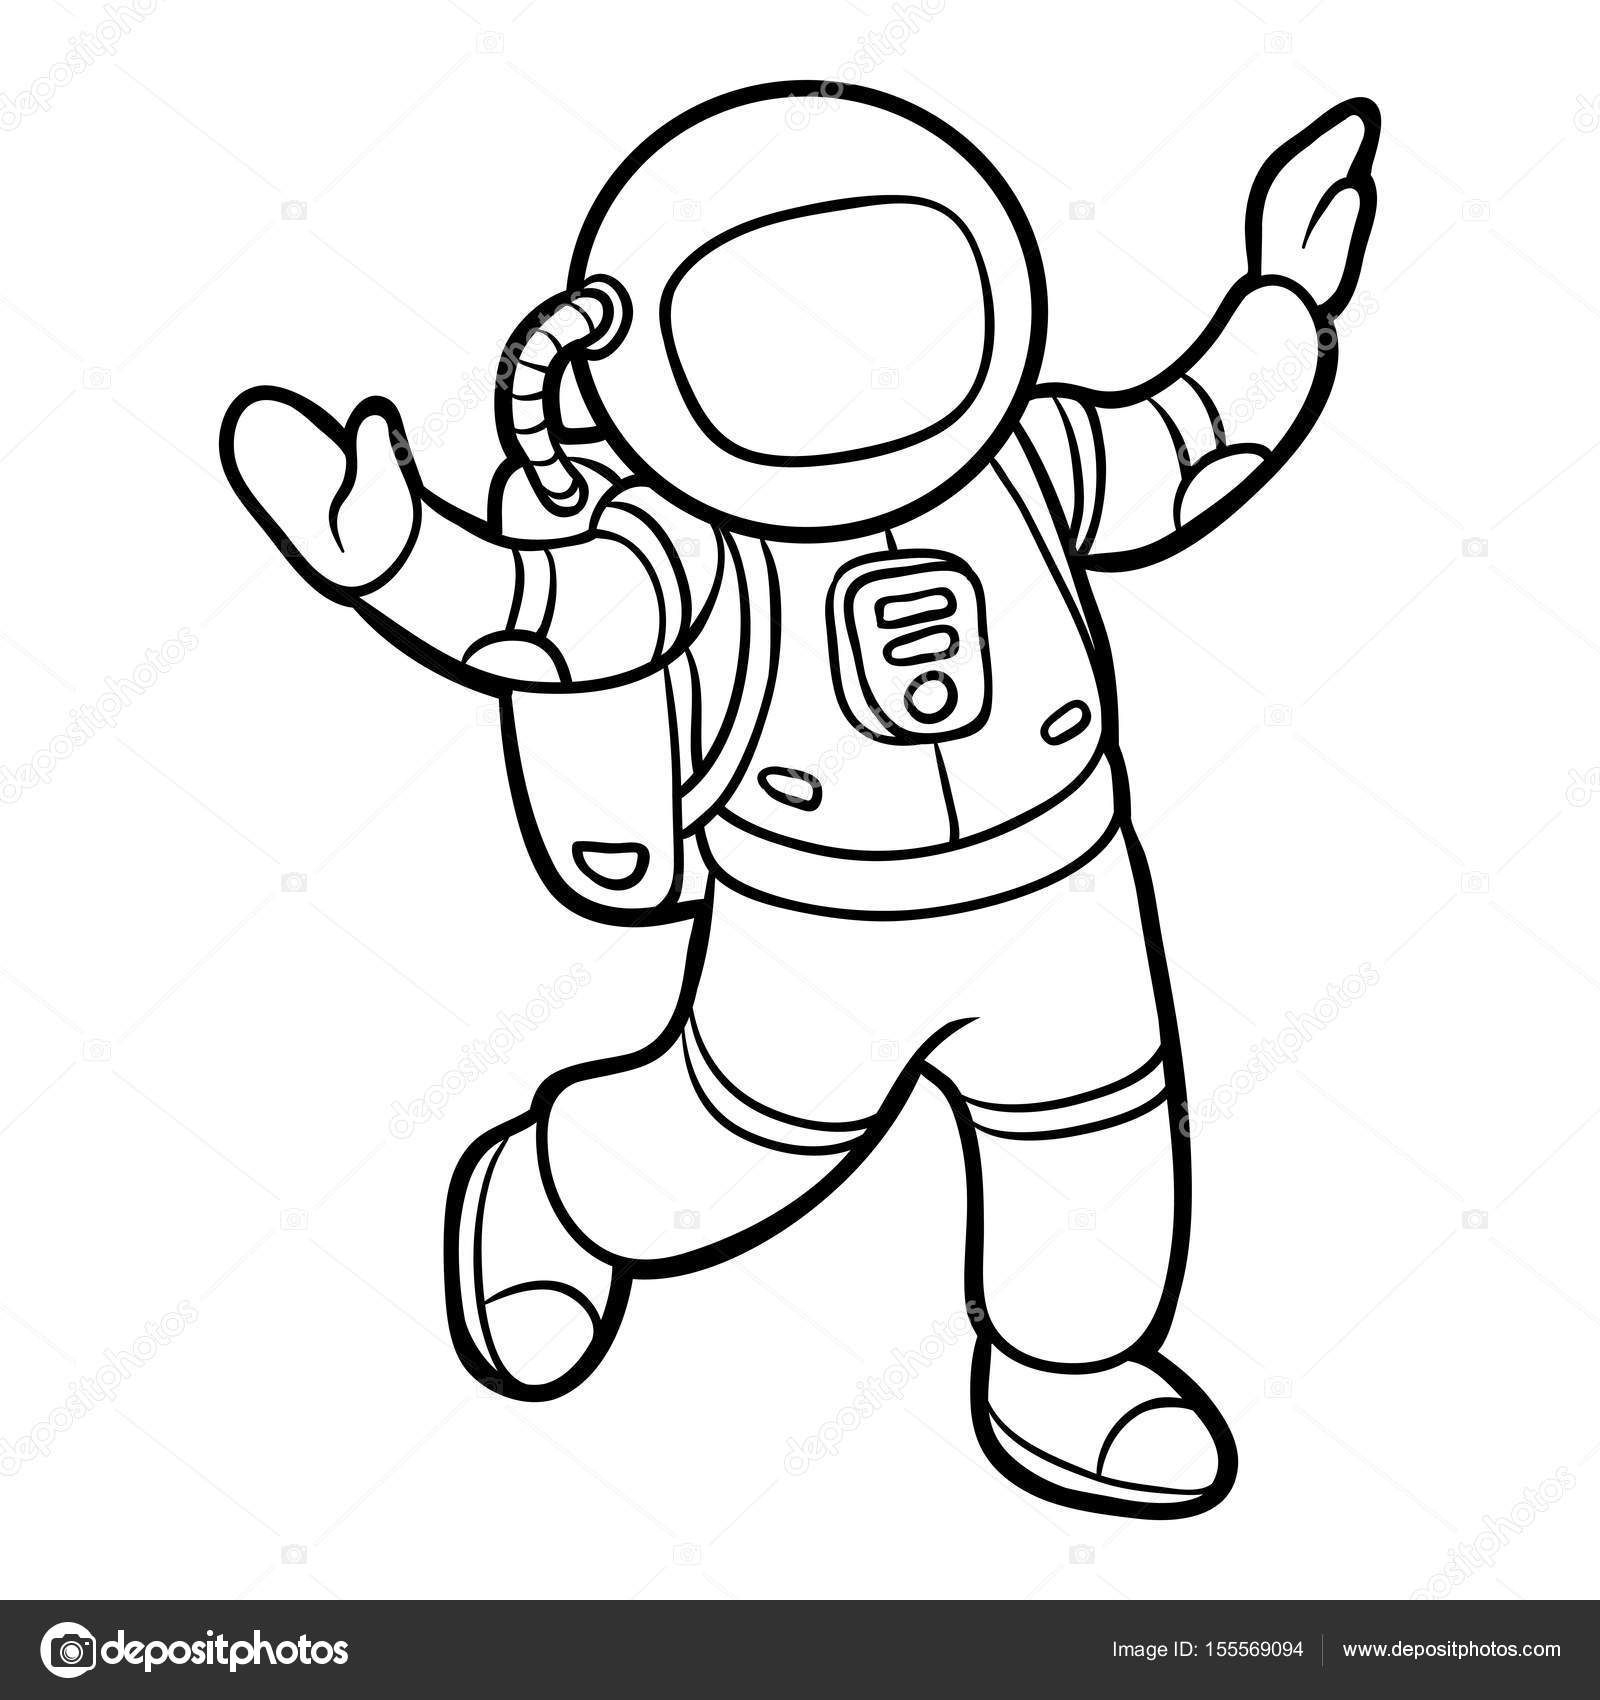 Depositphotos_155569094-Stock-Illustration-Coloring-Book concernant Coloriage Astronaute